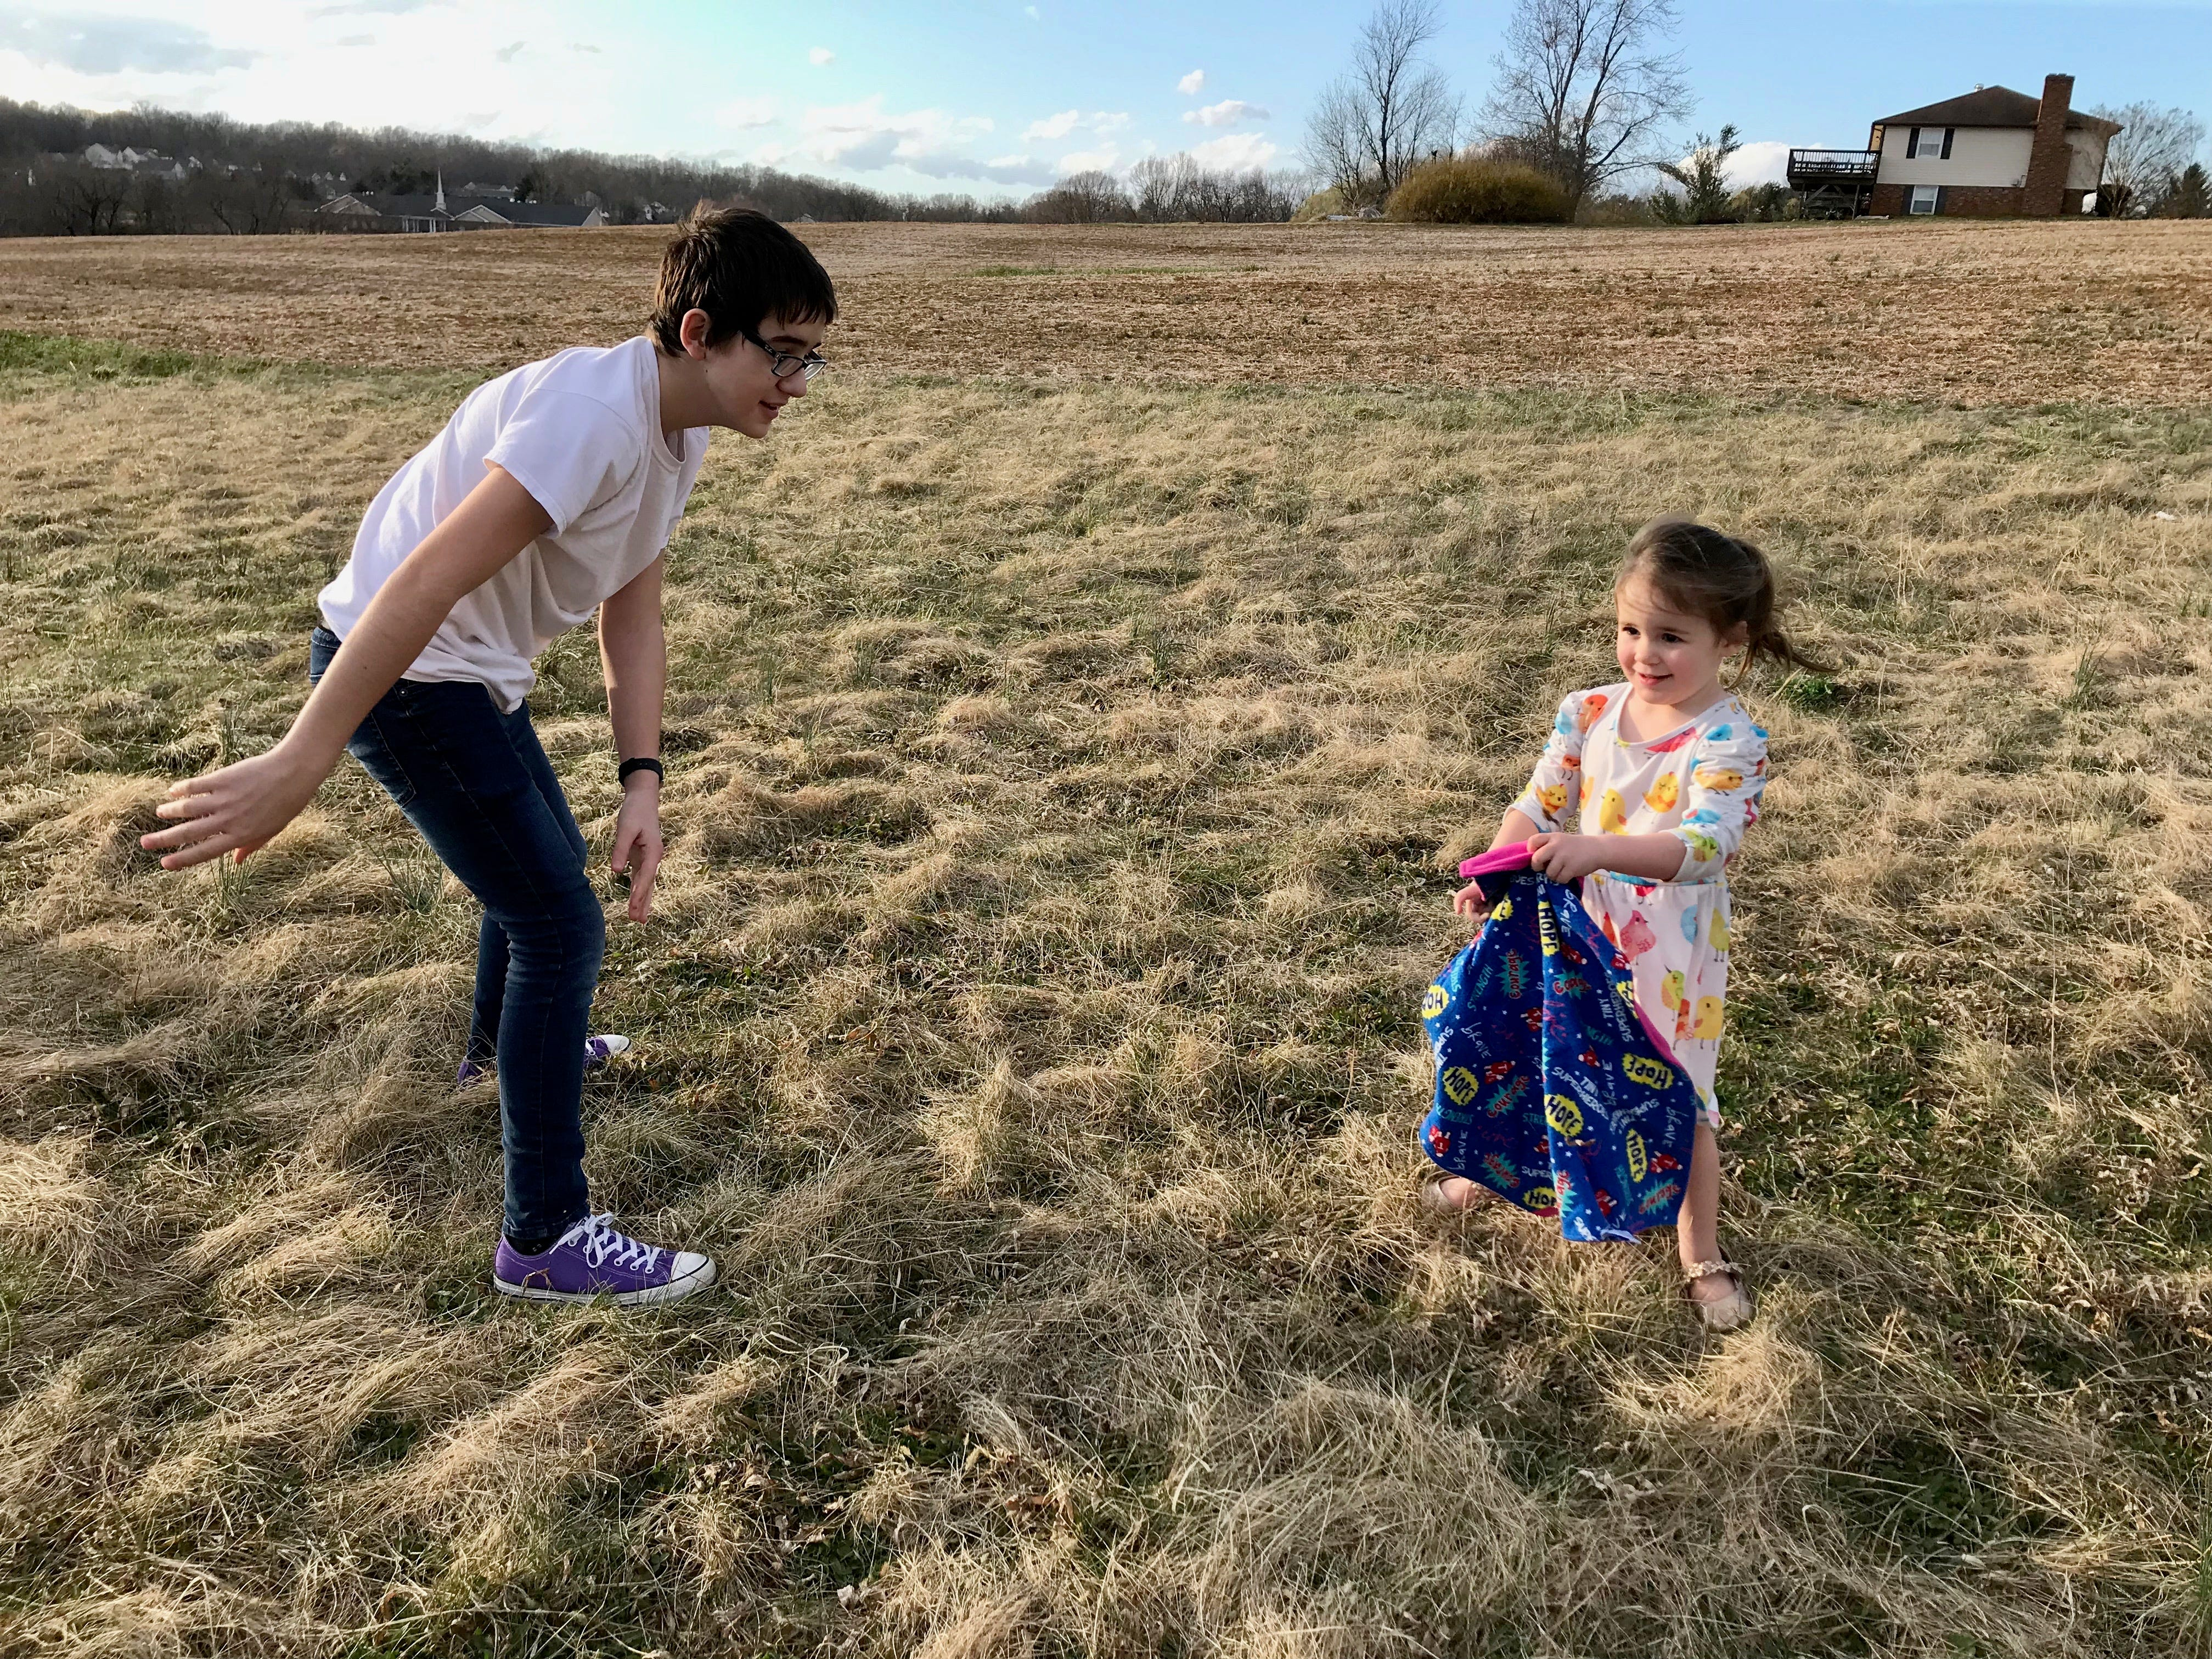 Wyatt Bussey, 14, plays with his sister Rebecca Bussey, 3, in their backyard of their home in Ladd, Virginia, on Friday, March 15, 2019. Rebecca has the rare disease Systemic Juvenile Idiopathic Arthritis. She is holding her Tiny Superheroes cape made by an organization to give hope to kids with chronic diseases.